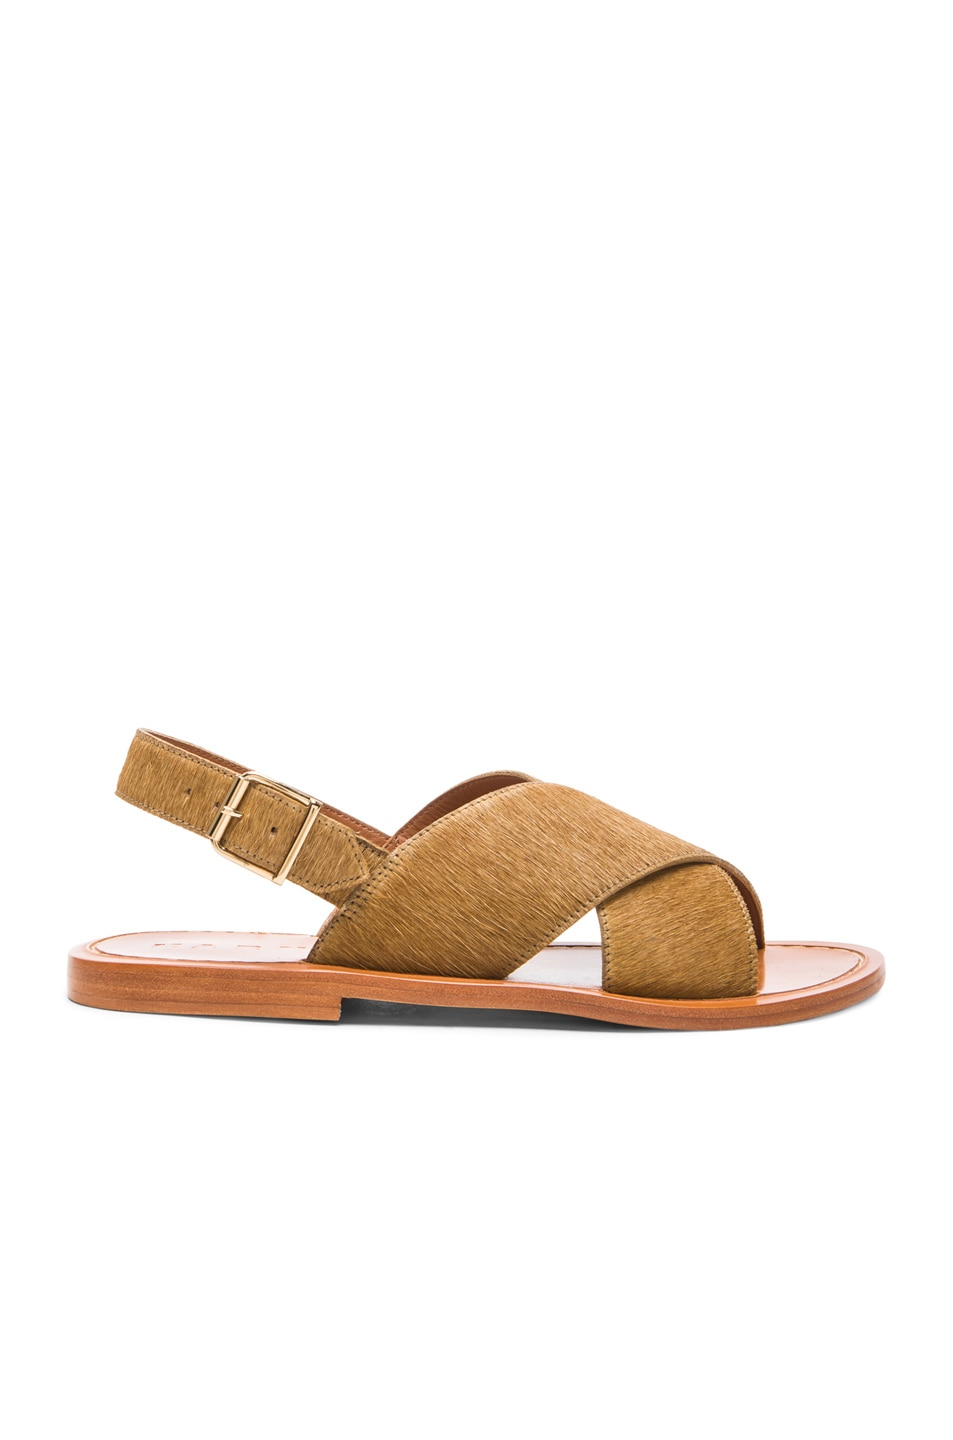 Image 1 of Marni Pony Hair Criss Cross Sandals in Soft Beige